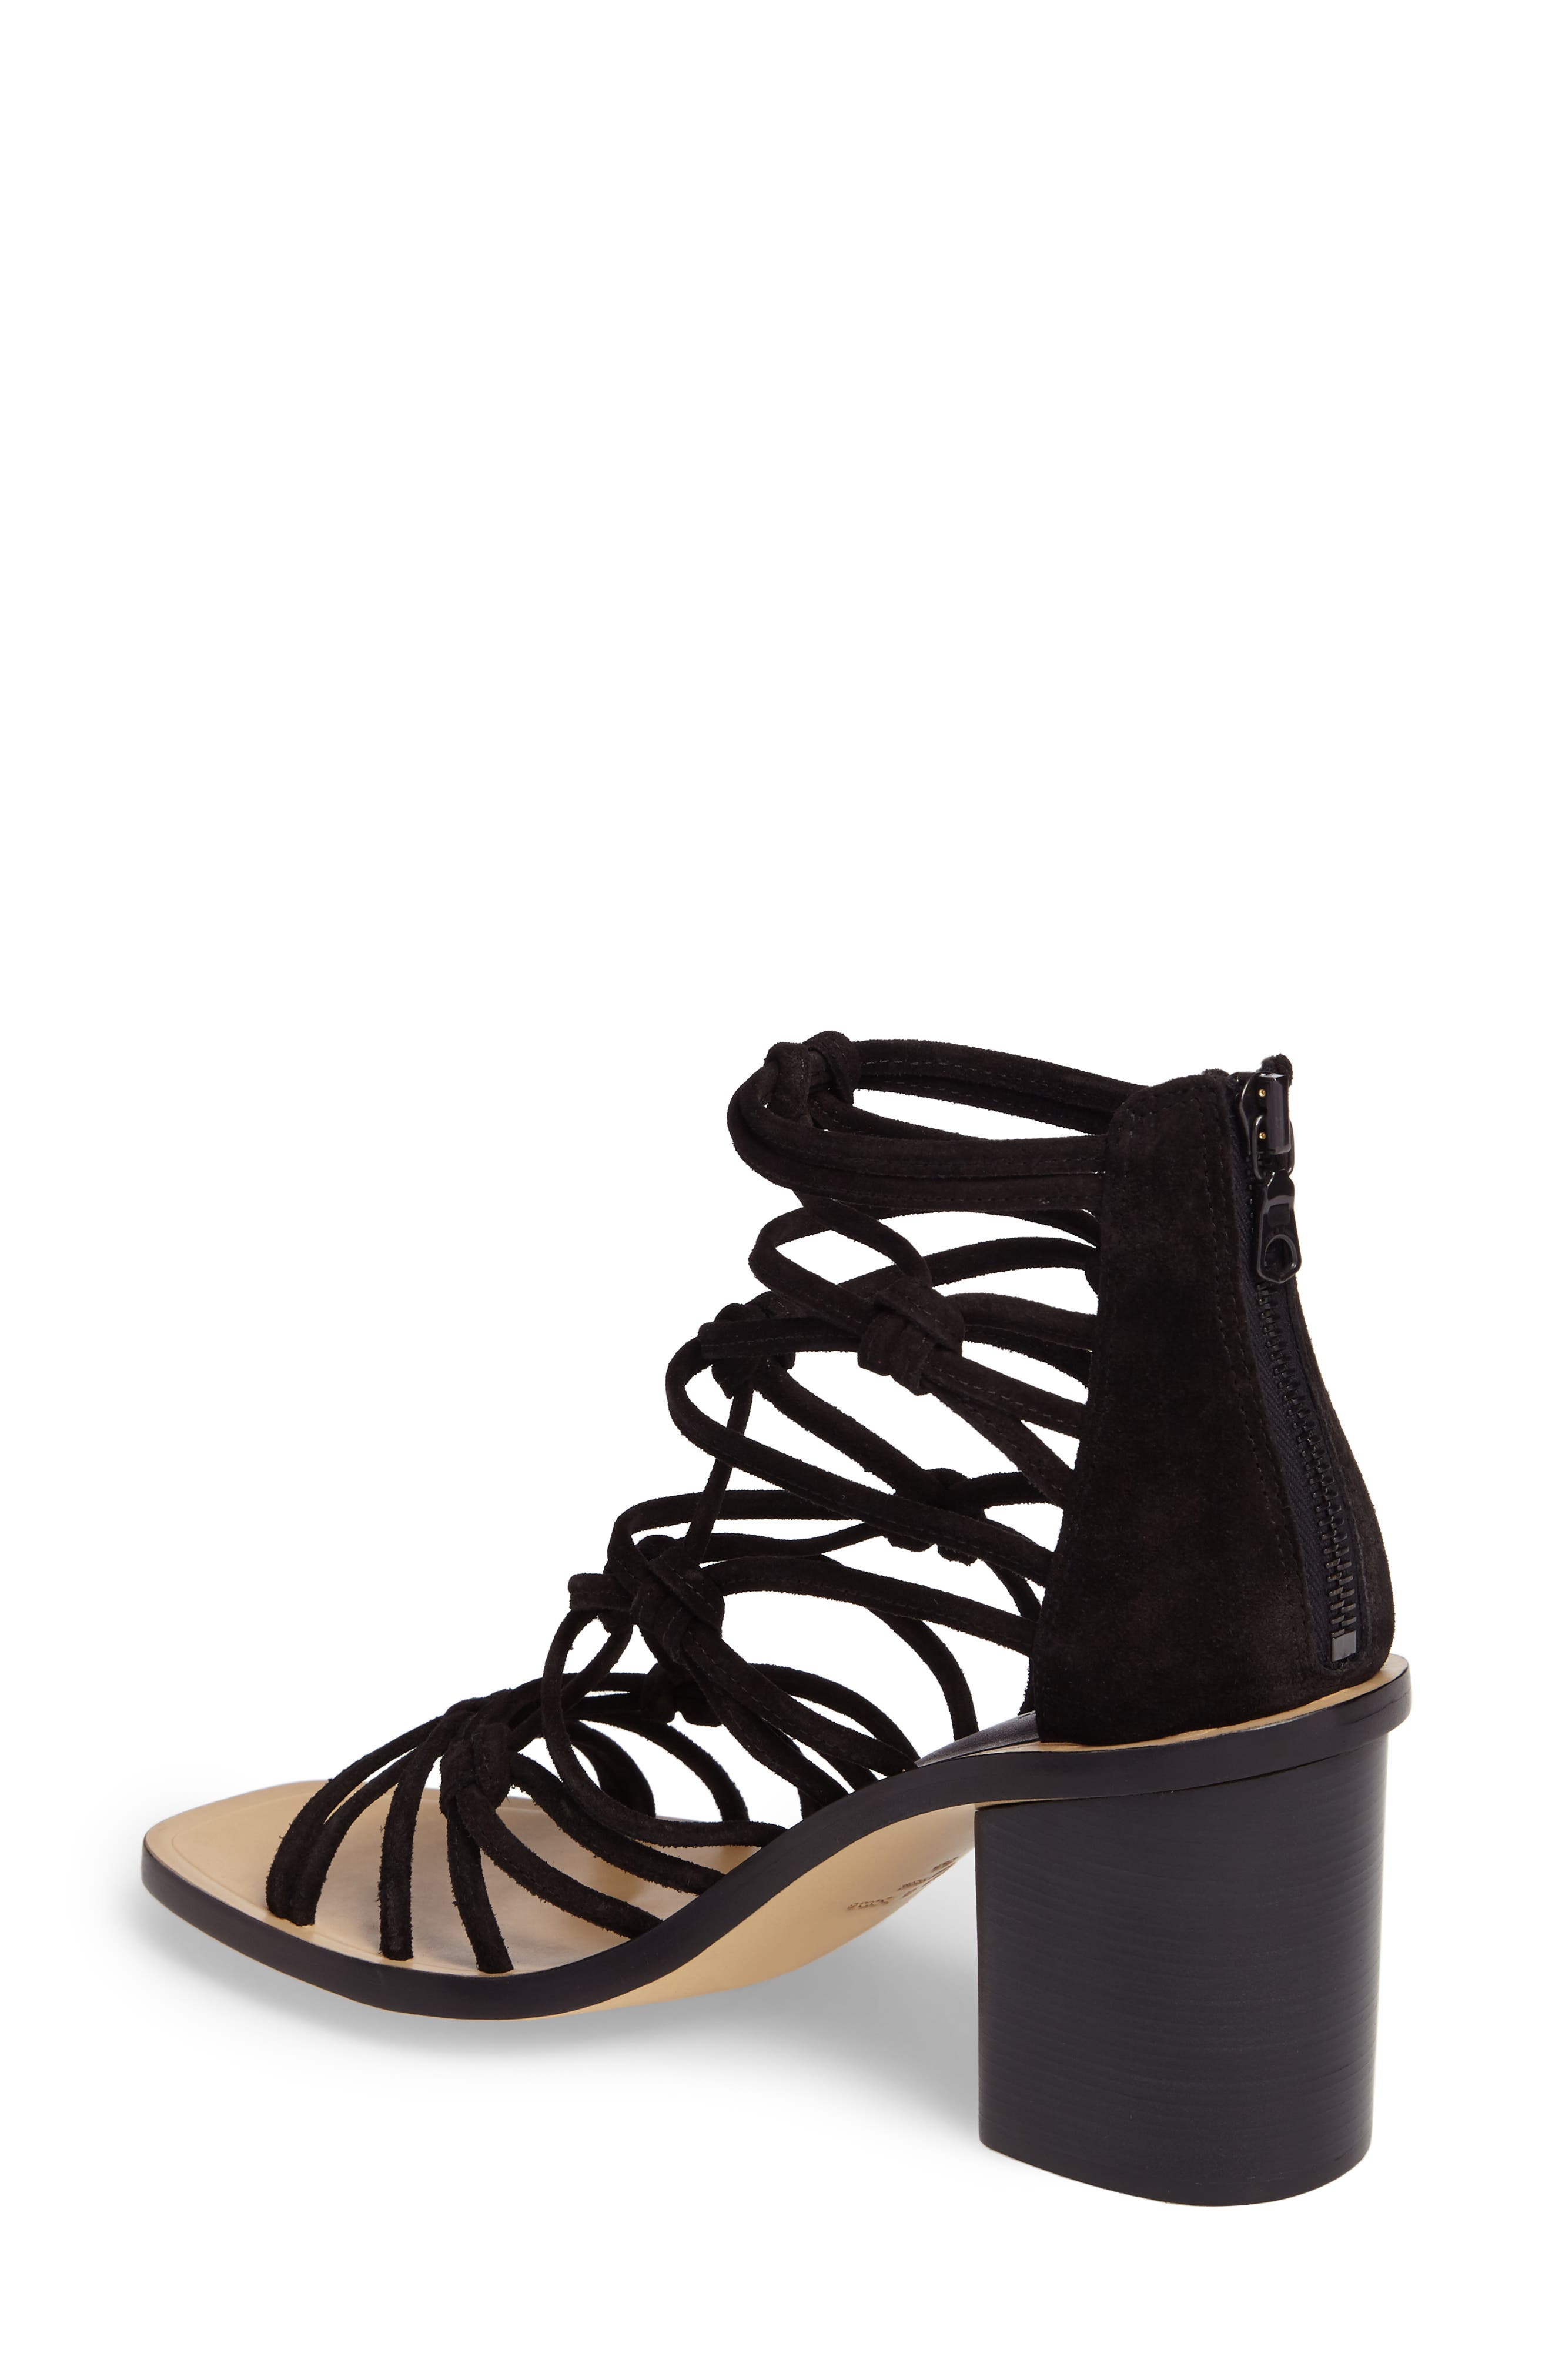 Camille Knotted Strappy Sandal,                             Alternate thumbnail 2, color,                             008